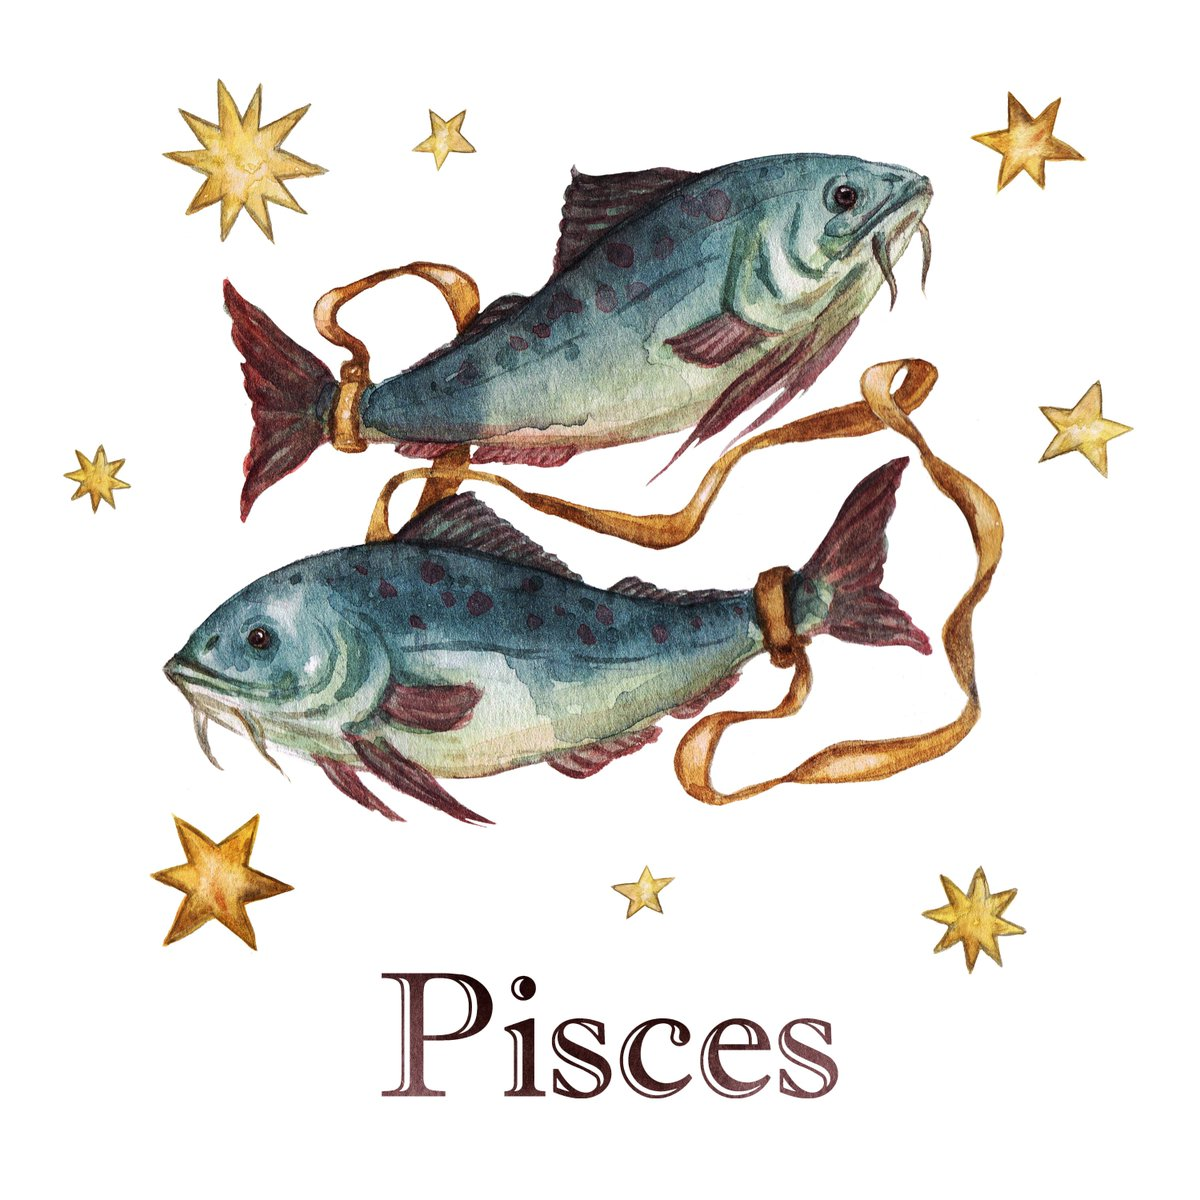 adobe stock on twitter a great horoscope inspires and compels an adobe stock on twitter a great horoscope inspires and compels an action that can help you reach your career goals